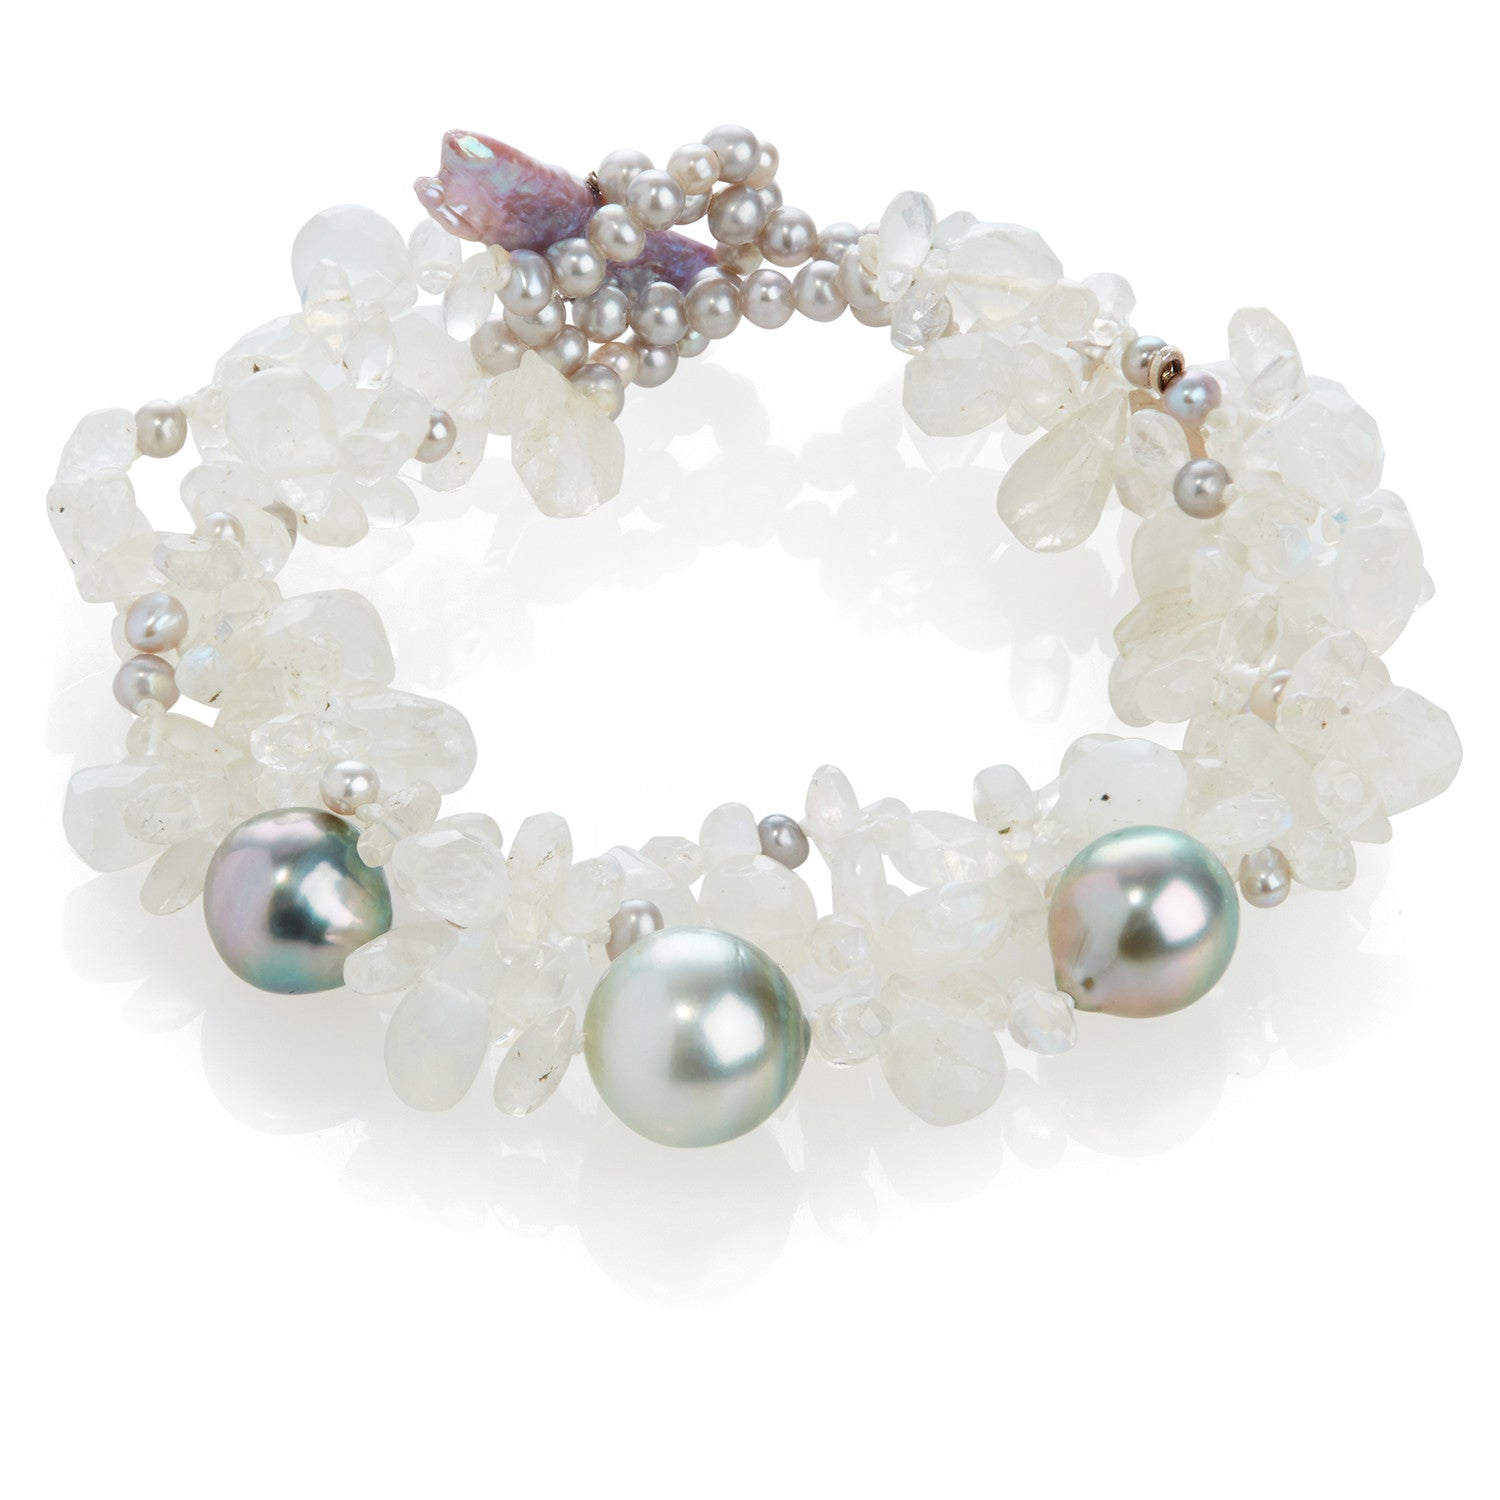 Rainbow Moonstone and Cultured Tahitian Pearl Bracelet